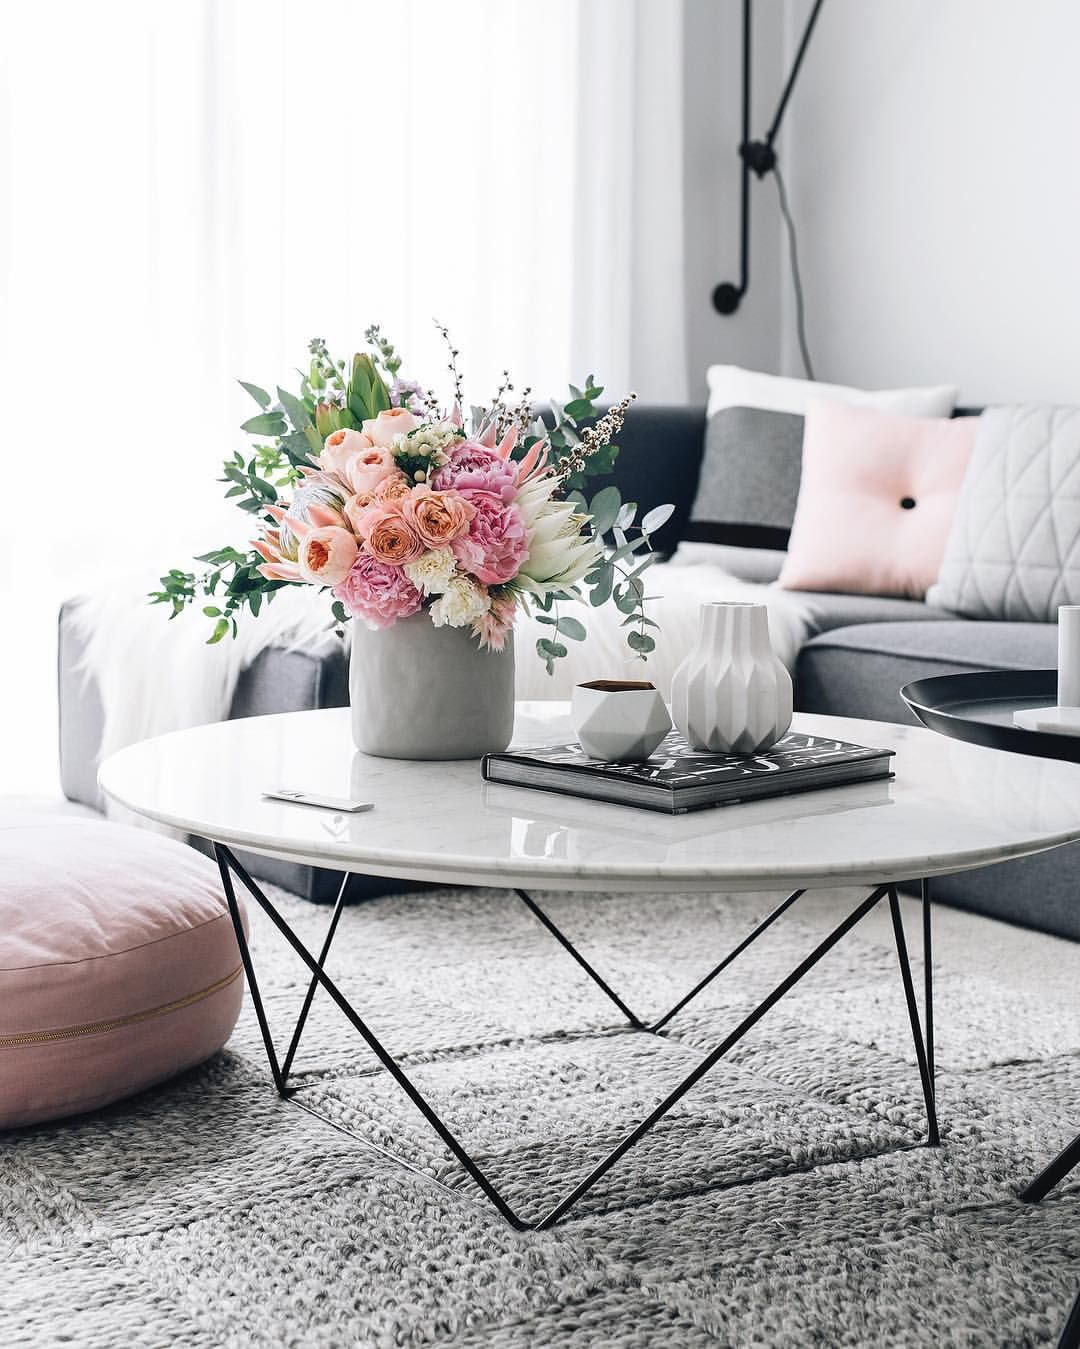 Decor Inspiring Marble Coffee Table For Living Room: Pin By Brooke Watson On Theatre Room Inspiration